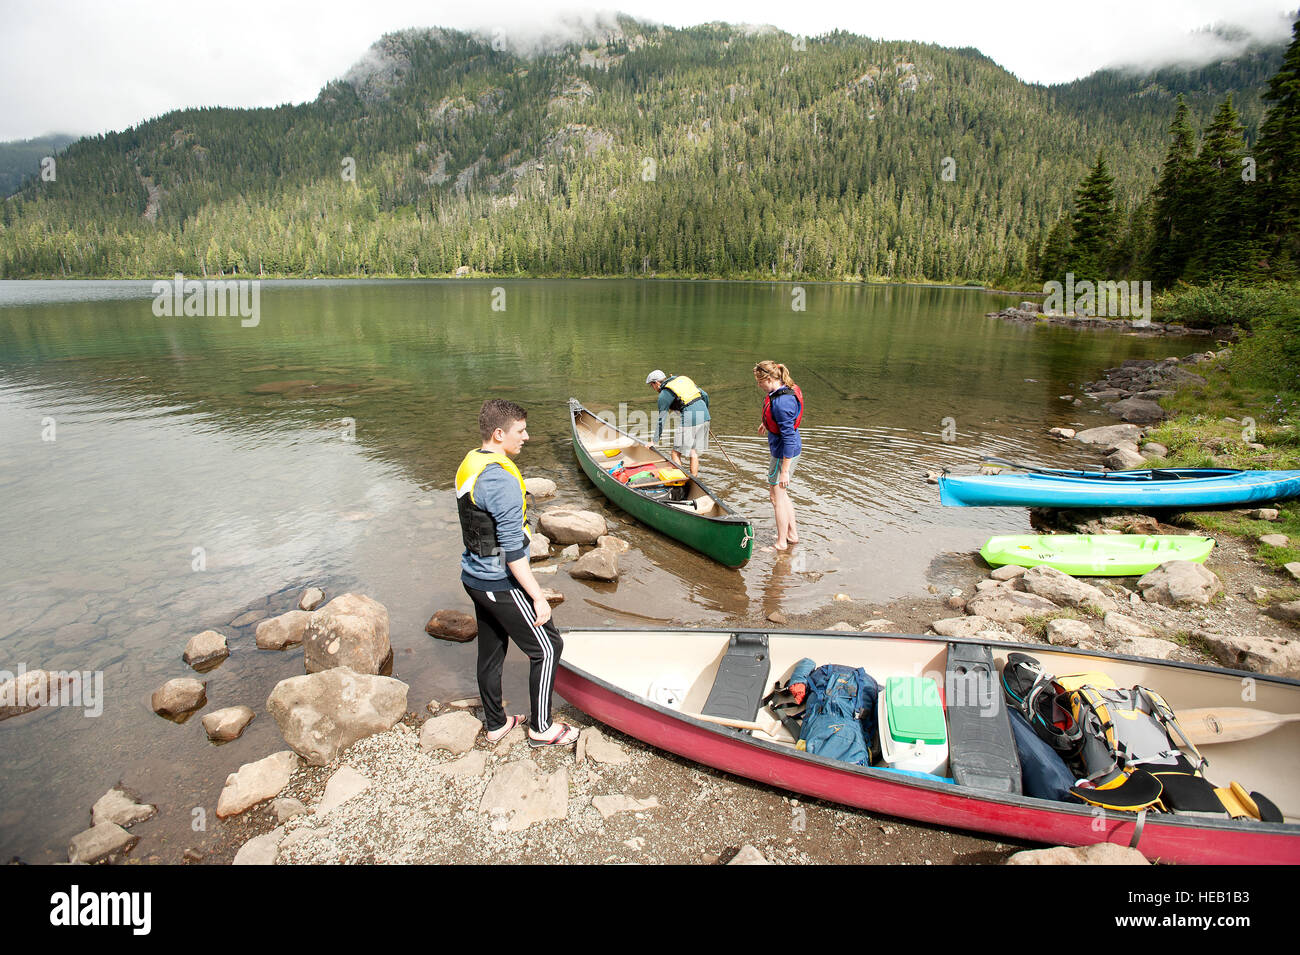 A group of canoe campers push off for a trip across Callaghan Lake Saturday afternoon.  Camp Whistler BC, Canada - Stock Image